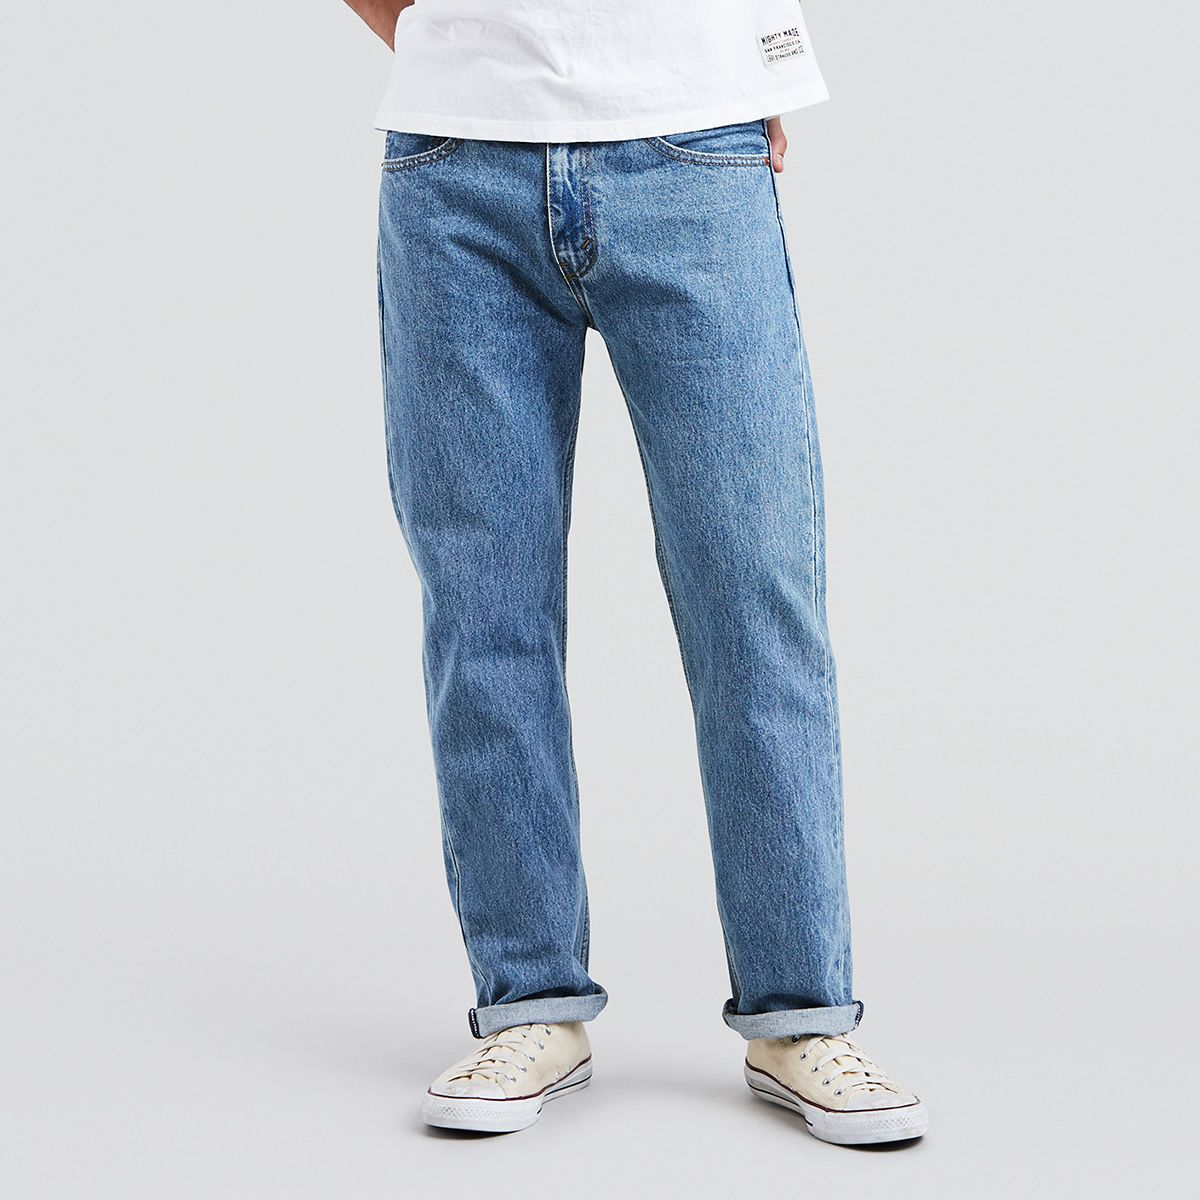 28048d43f8e02 505 Regular Fit Levis Jeans for Men - Macy s